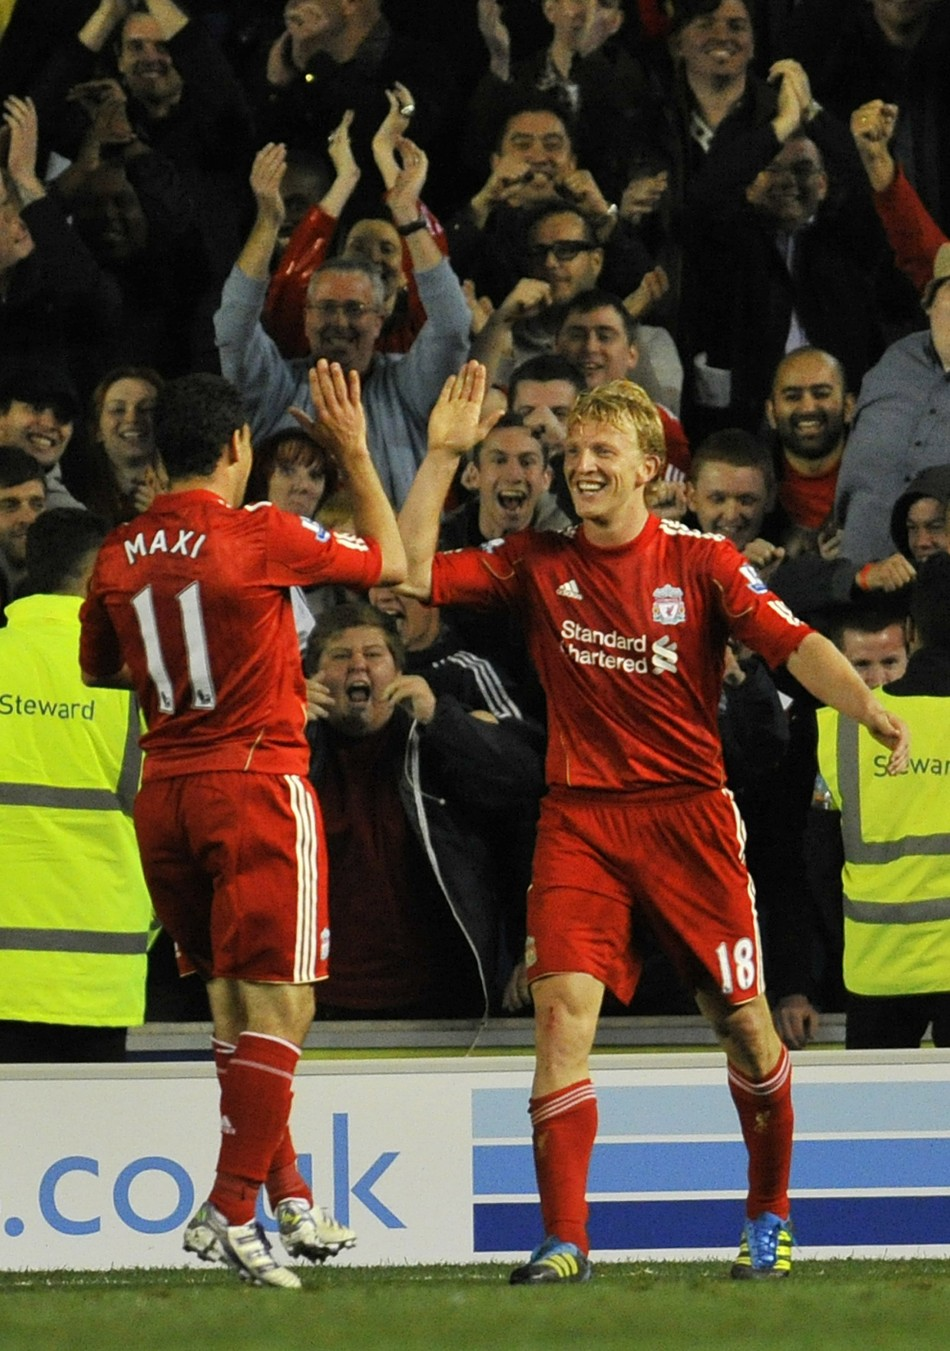 Liverpool's Dirk Kuyt and Maxi Rodriguez